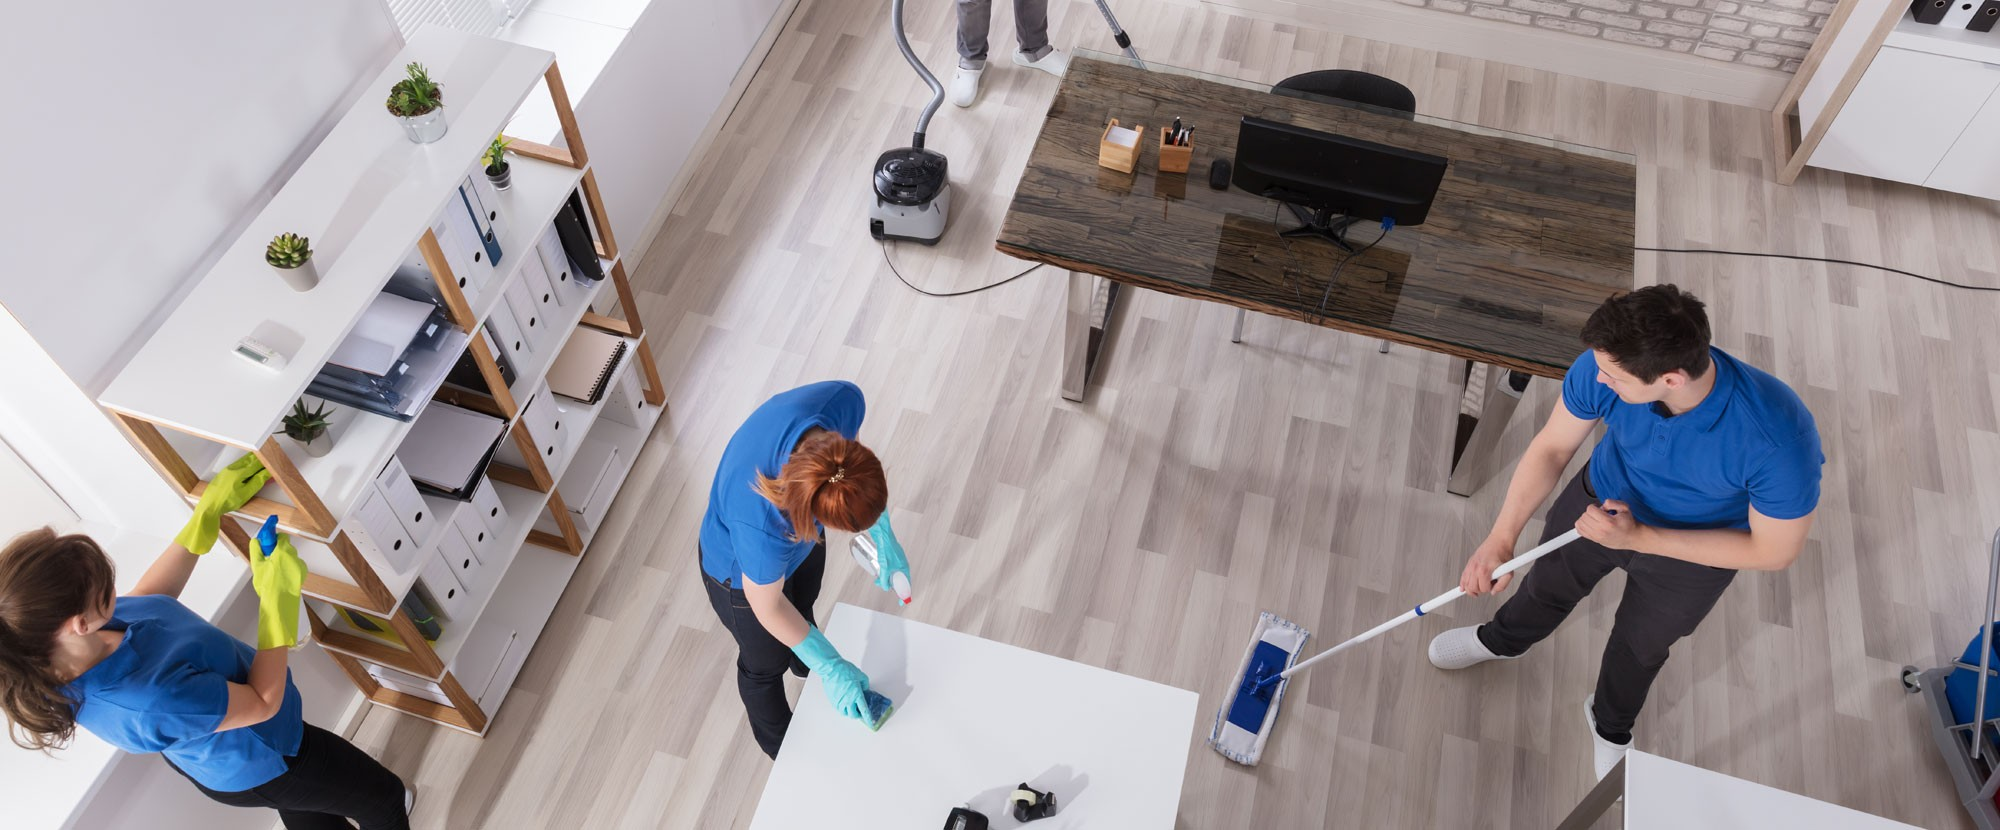 House Cleaning Services Tampa